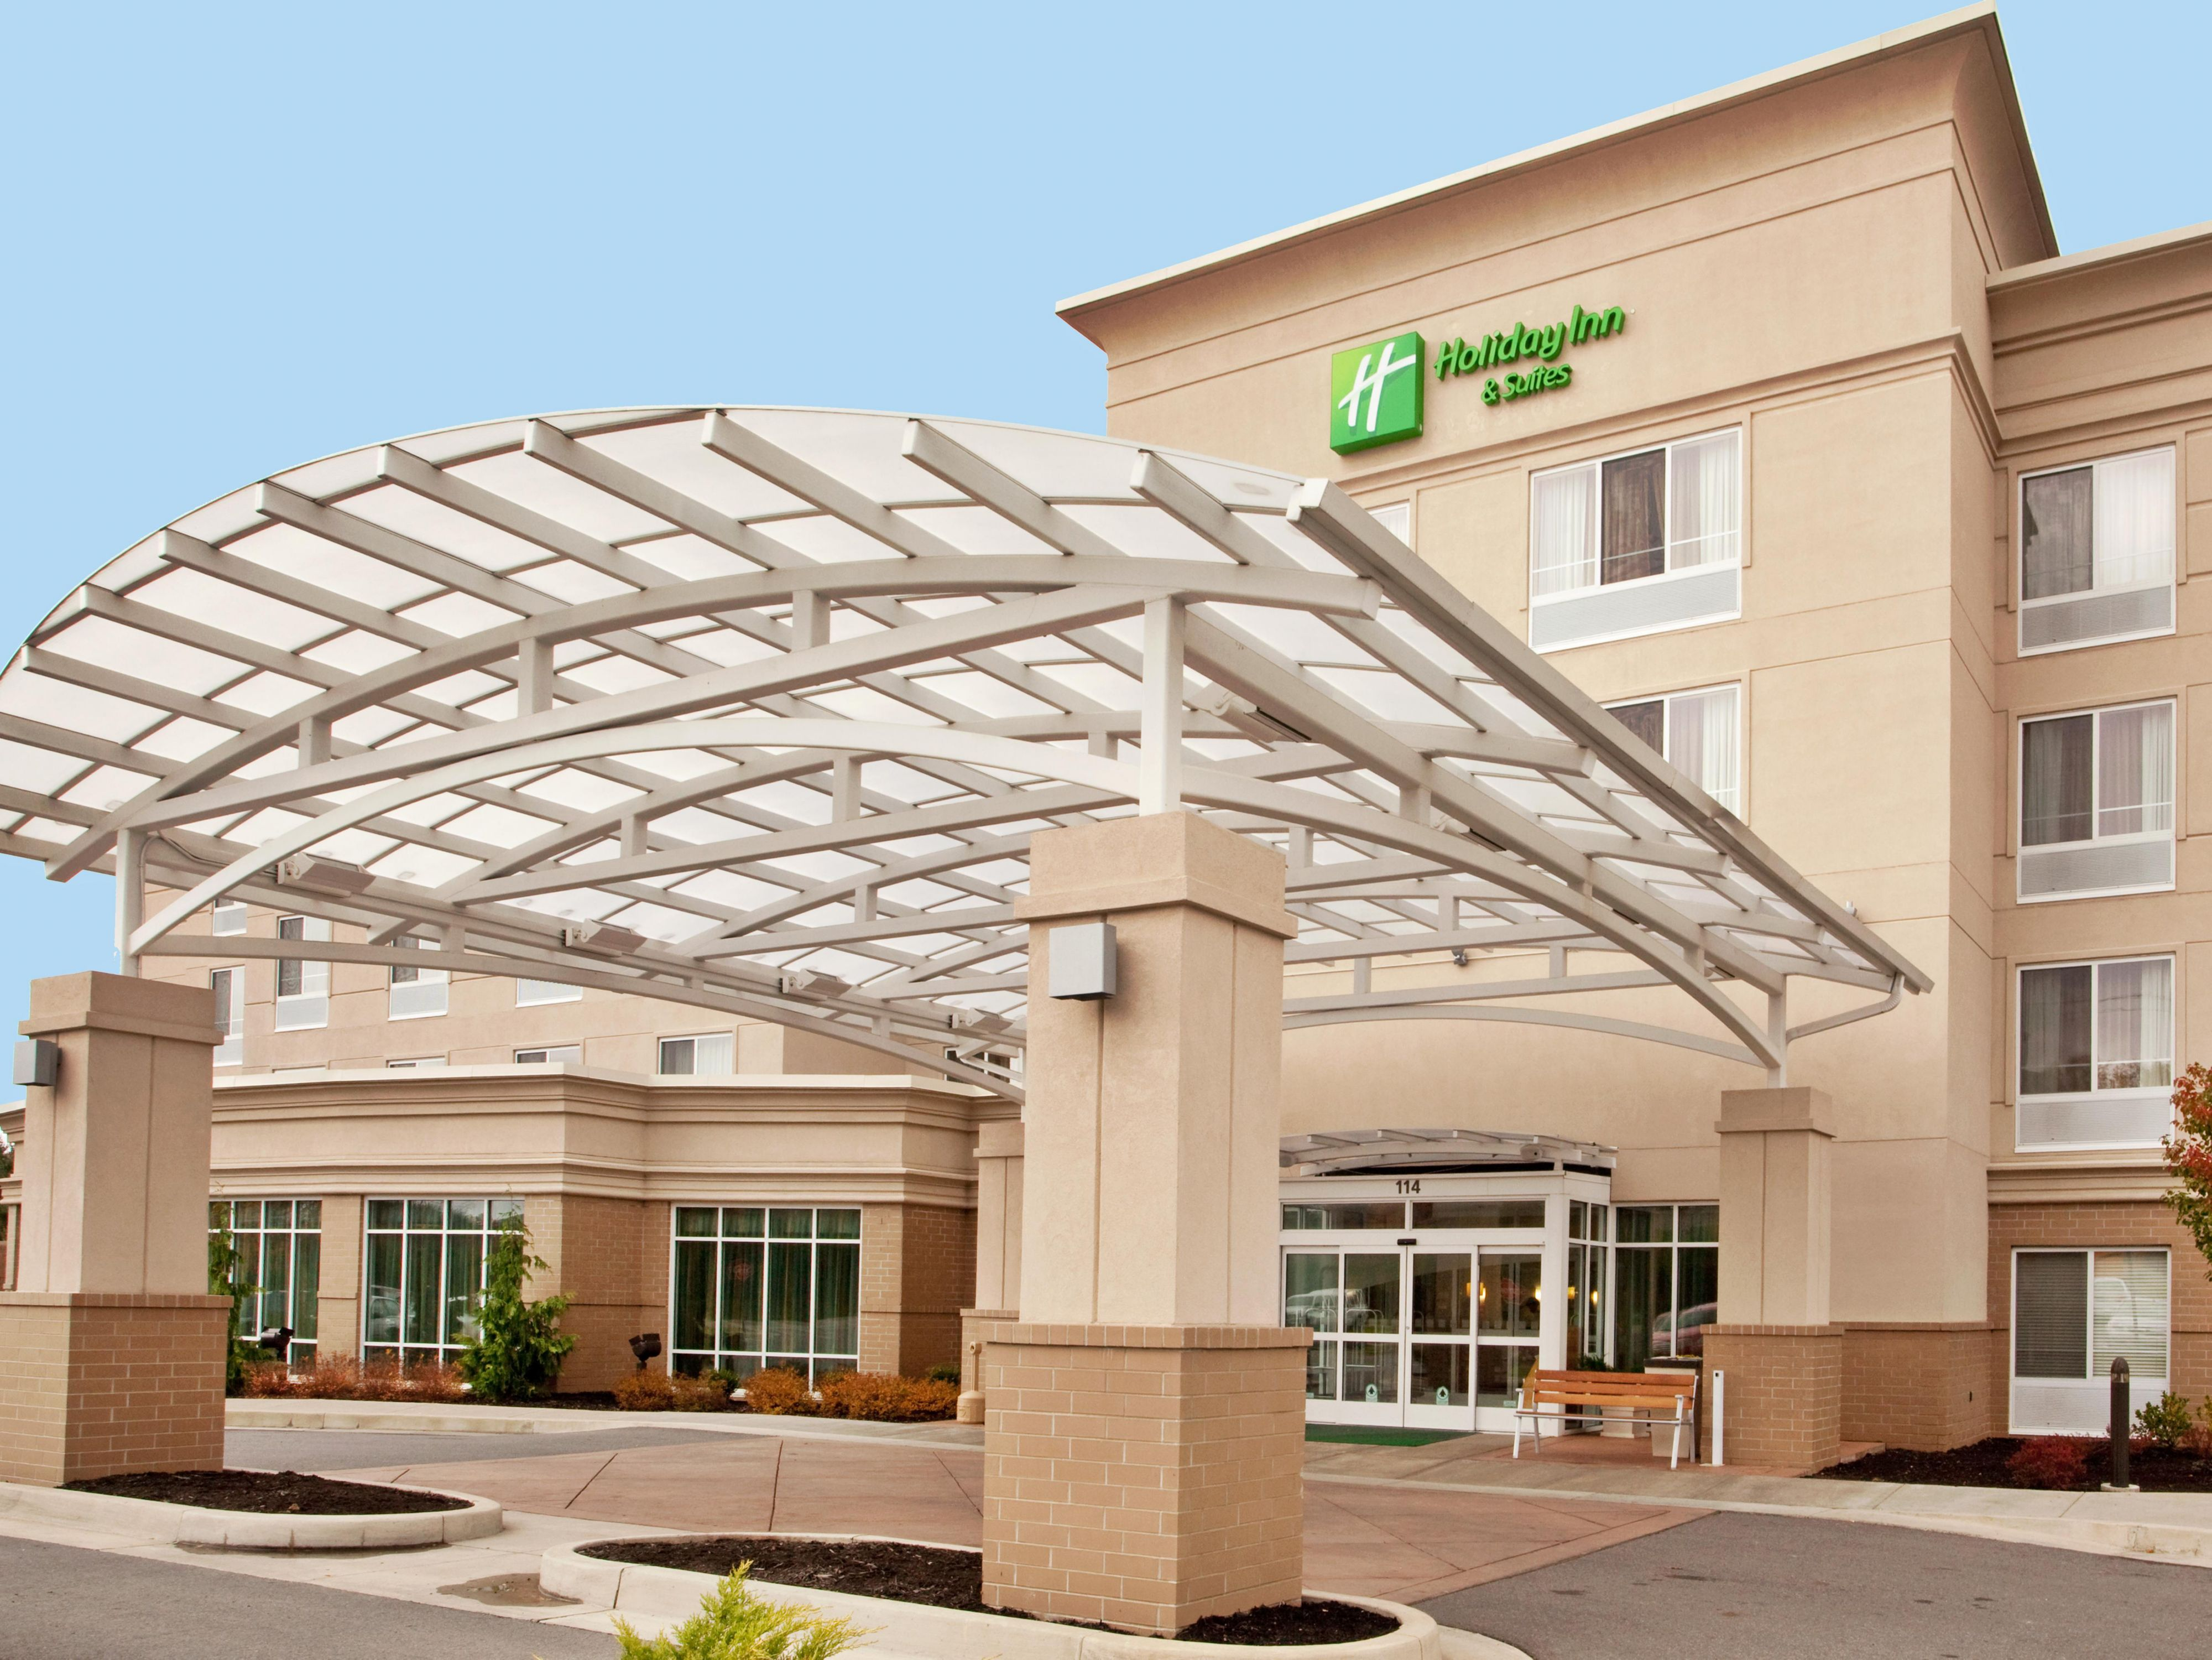 Welcome to the Holiday Inn Beckley